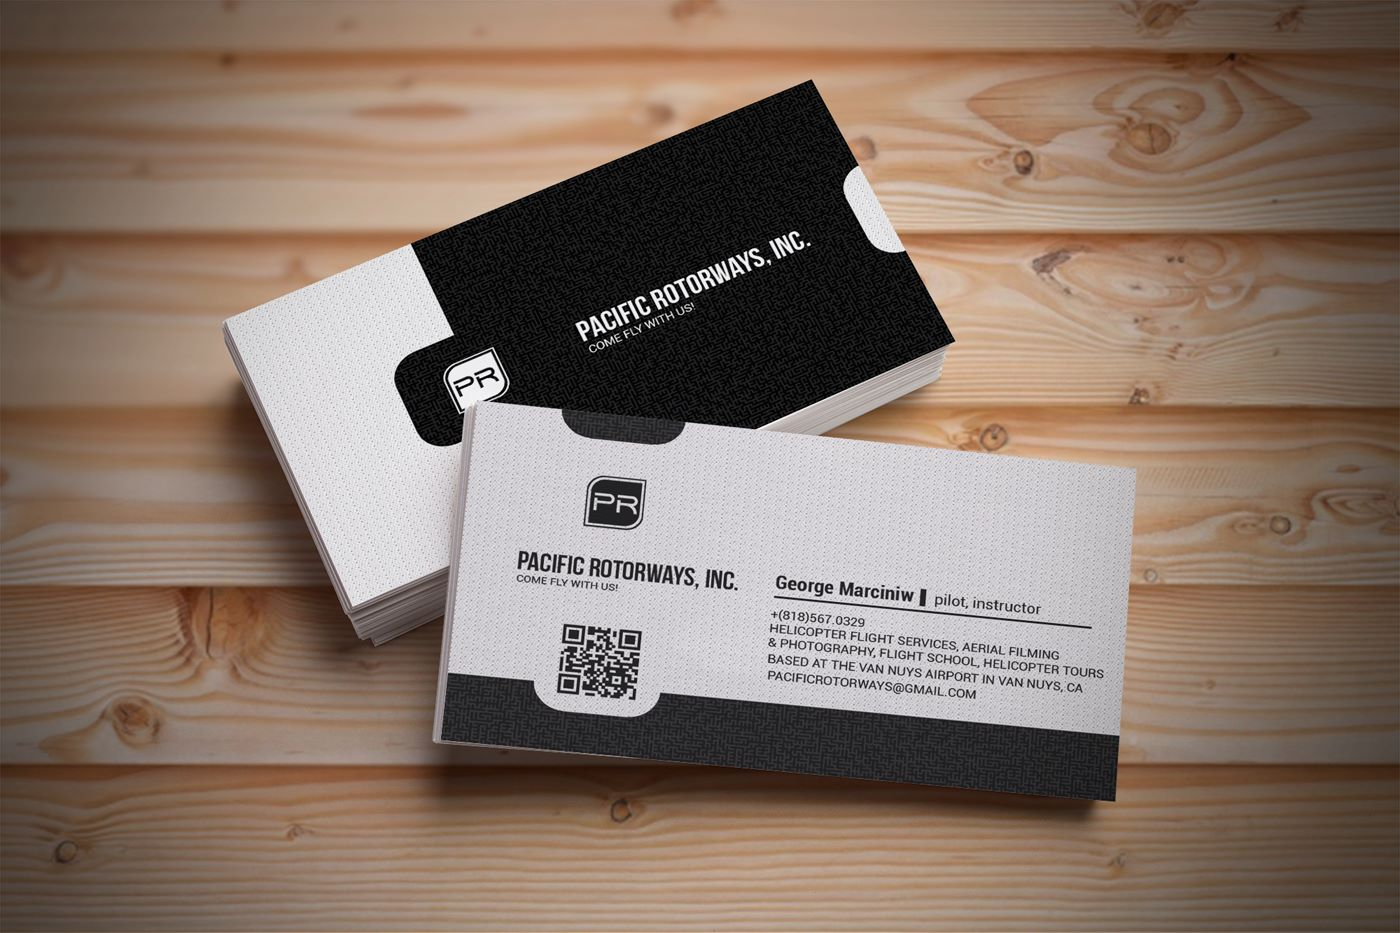 Business business card design for pacific rotorways inc by matej business business card design for pacific rotorways inc in united states design 9191348 reheart Choice Image